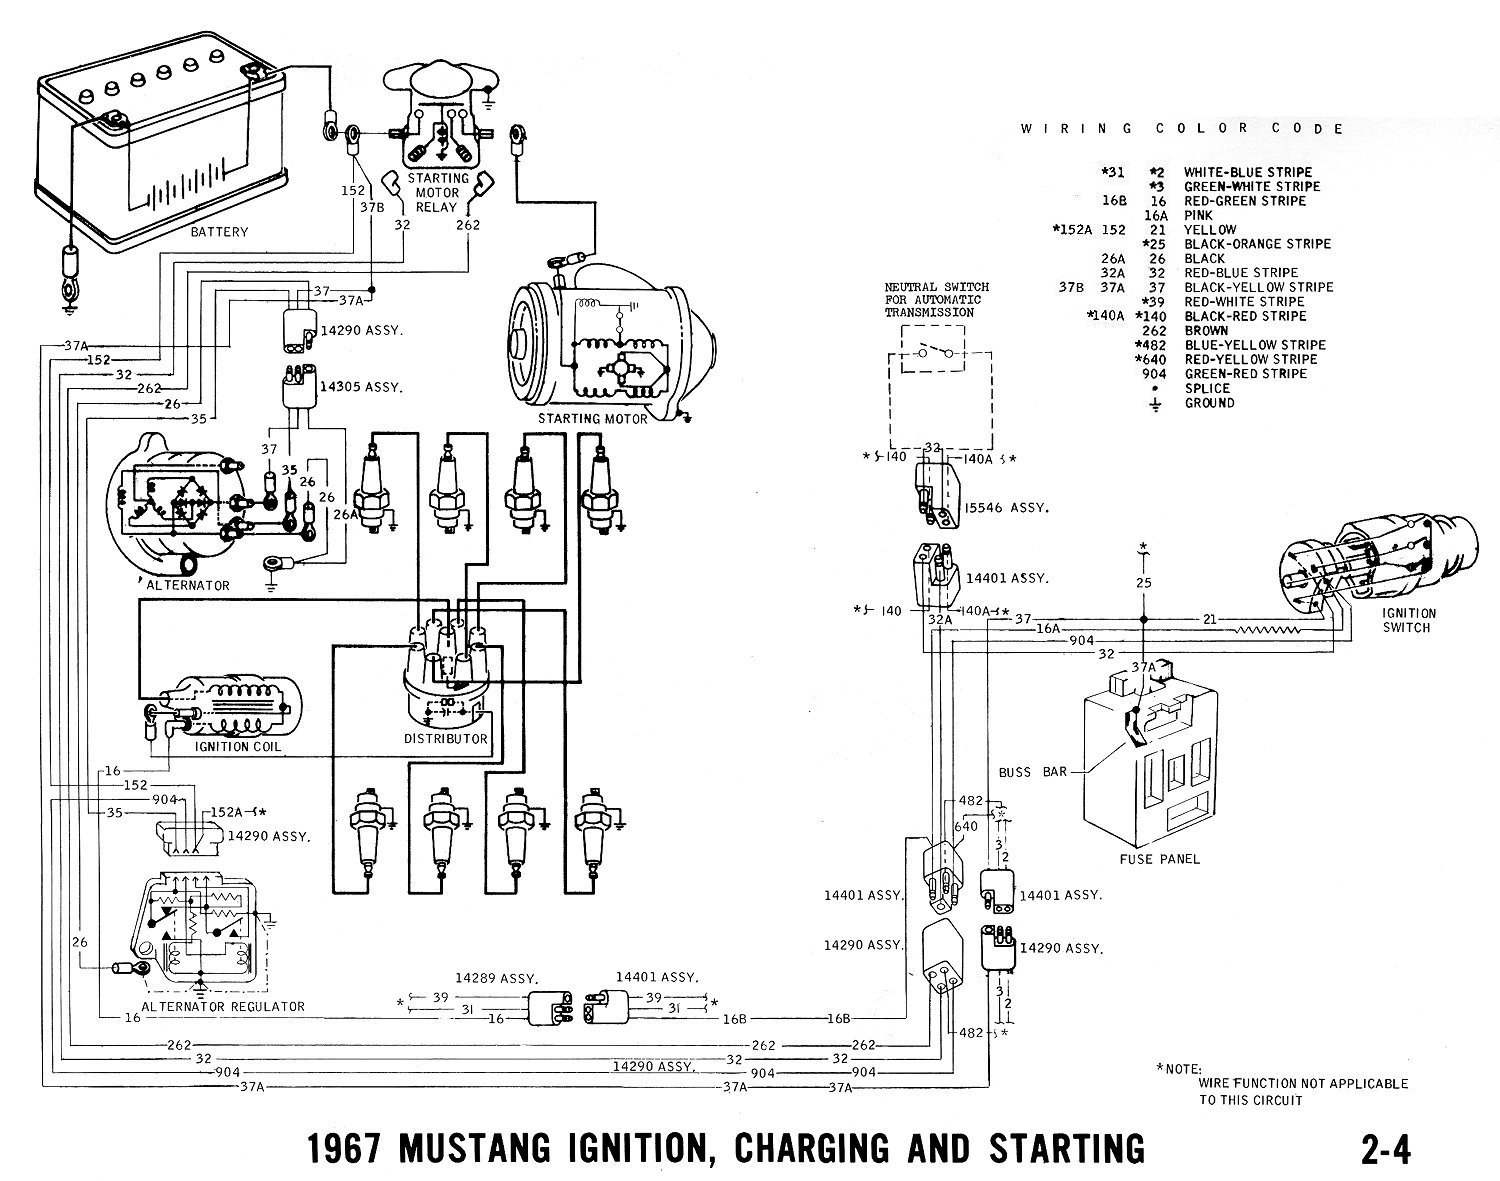 Wiring Diagram Jaguar 1966 68 Data Premium Car Audio System 69 Cougar Dash Home Diagrams S Type 67